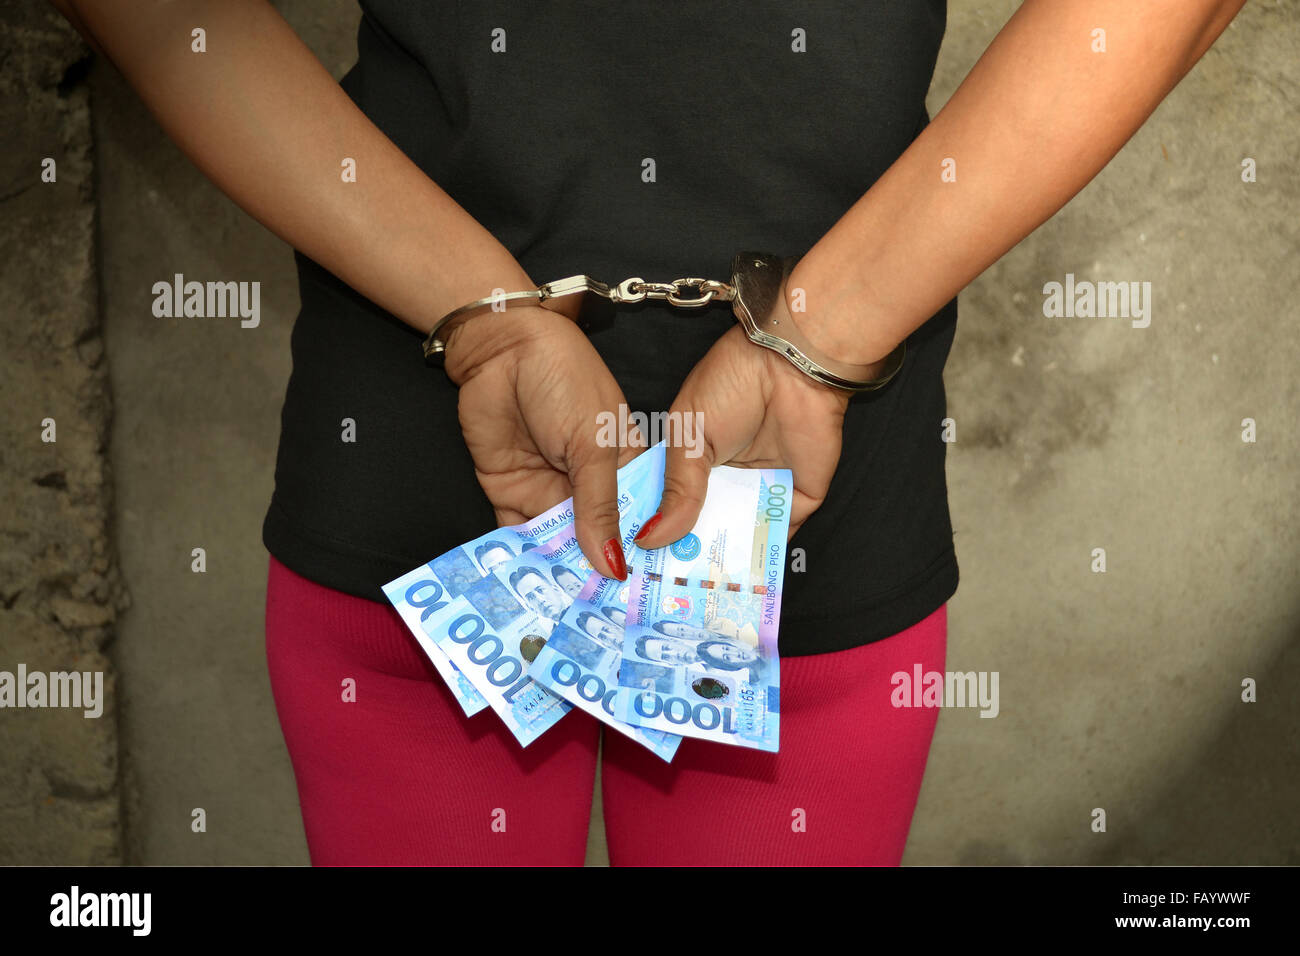 Female thief cuffed hands with Filipino money in her hands - Stock Image